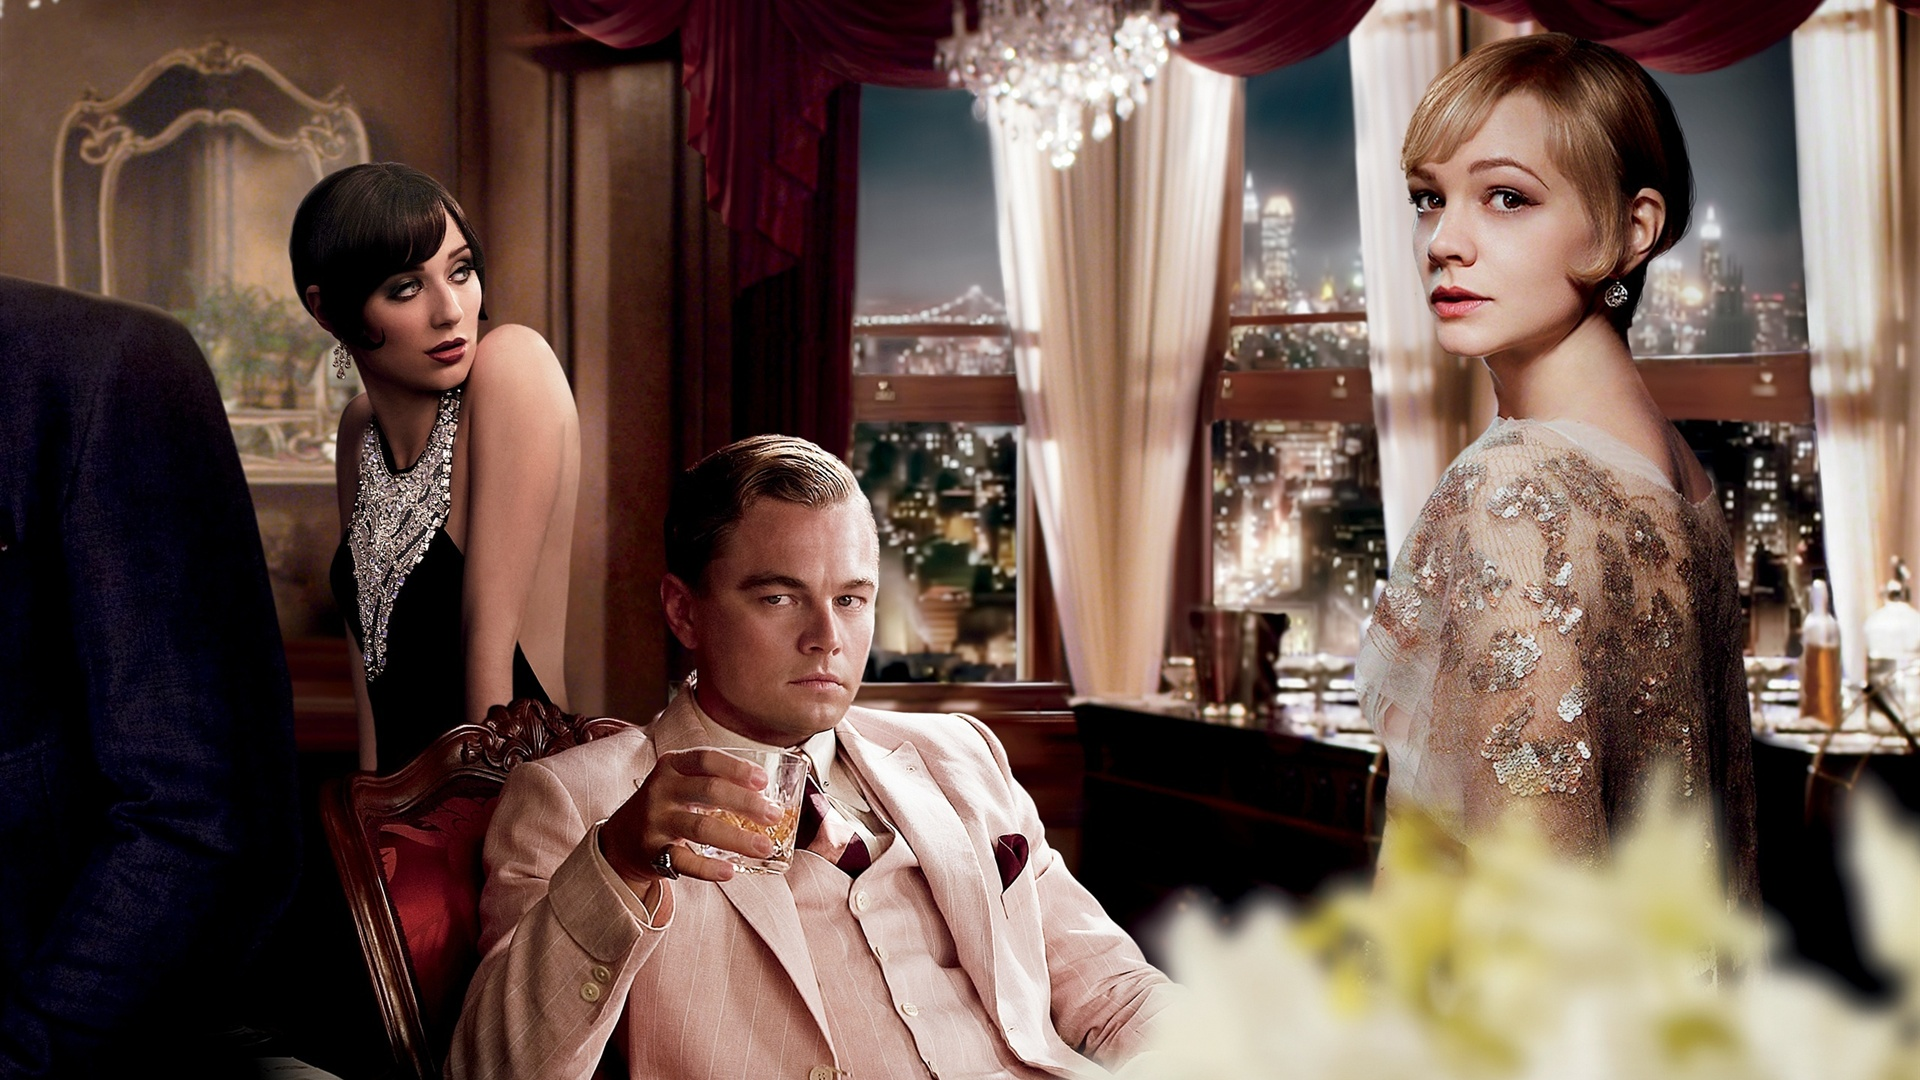 Fast And Furious Iphone 5 Wallpaper Wallpaper The Great Gatsby 2013 Hd 2560x1600 Hd Picture Image